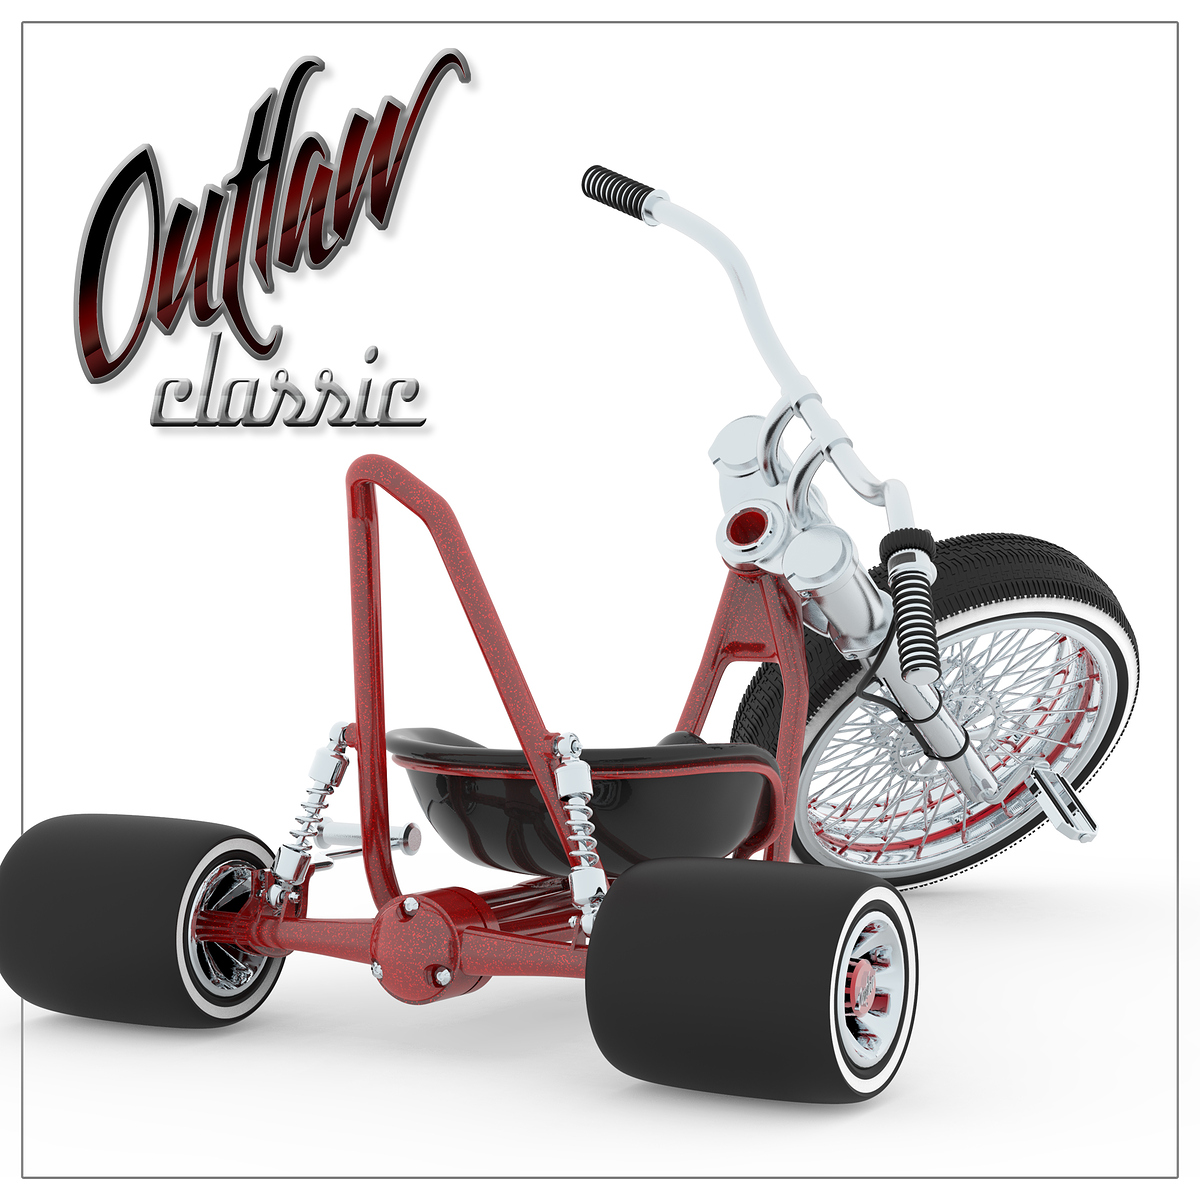 Outlaw%20Classic%20Beitrag